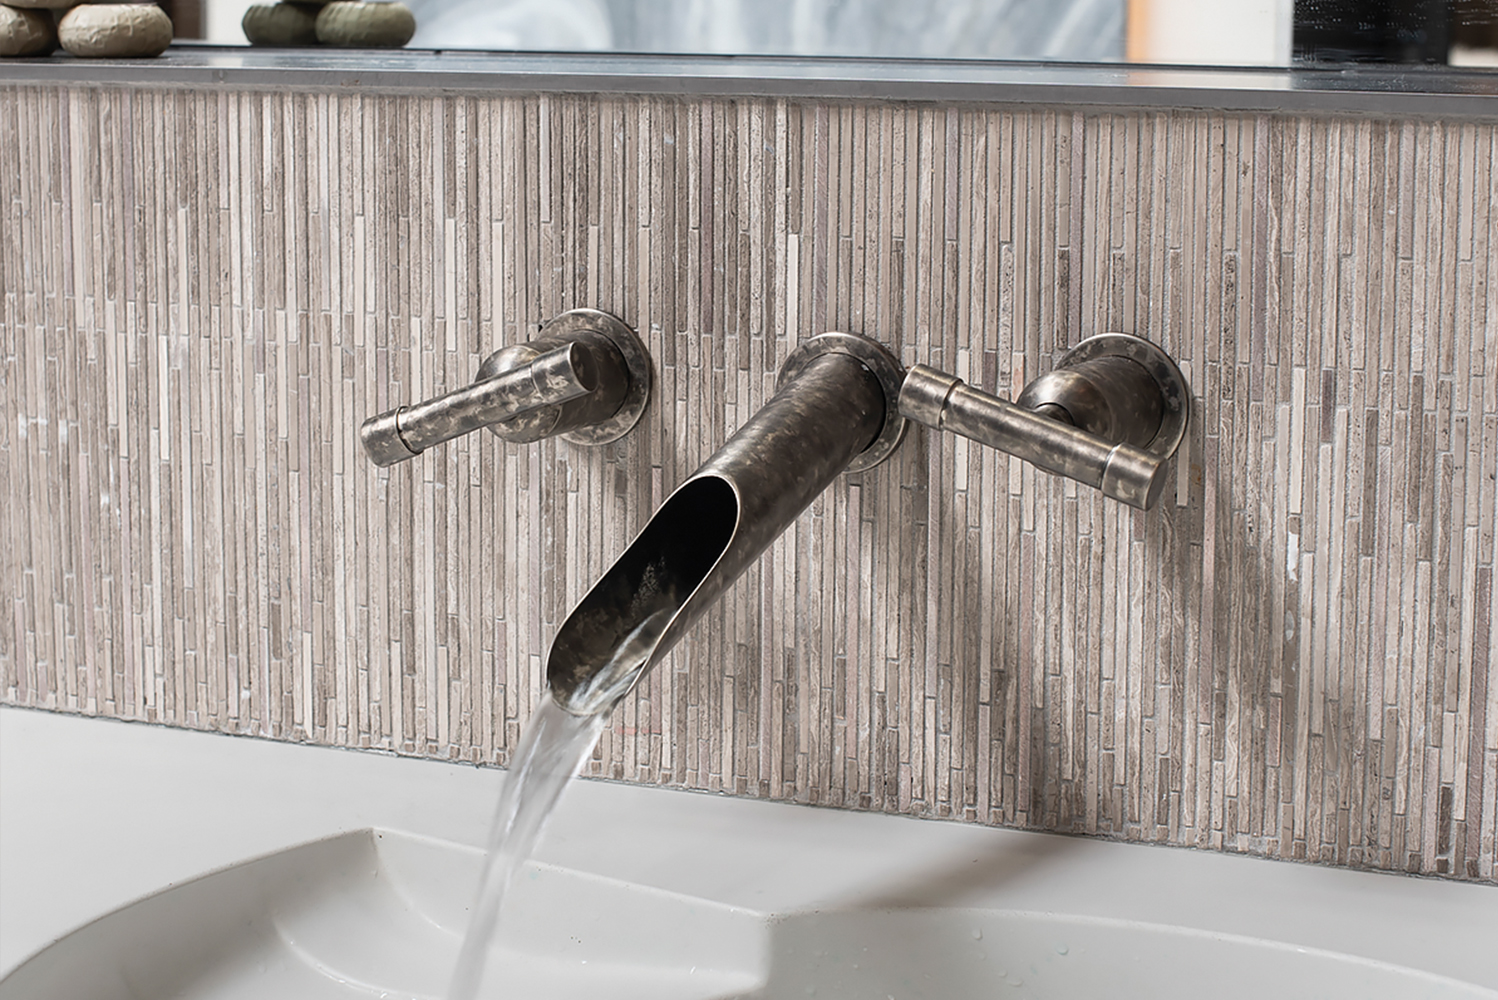 The faucets have independent controls that allow for flexibility for deck- or wall-mount installation wherever designers wish.